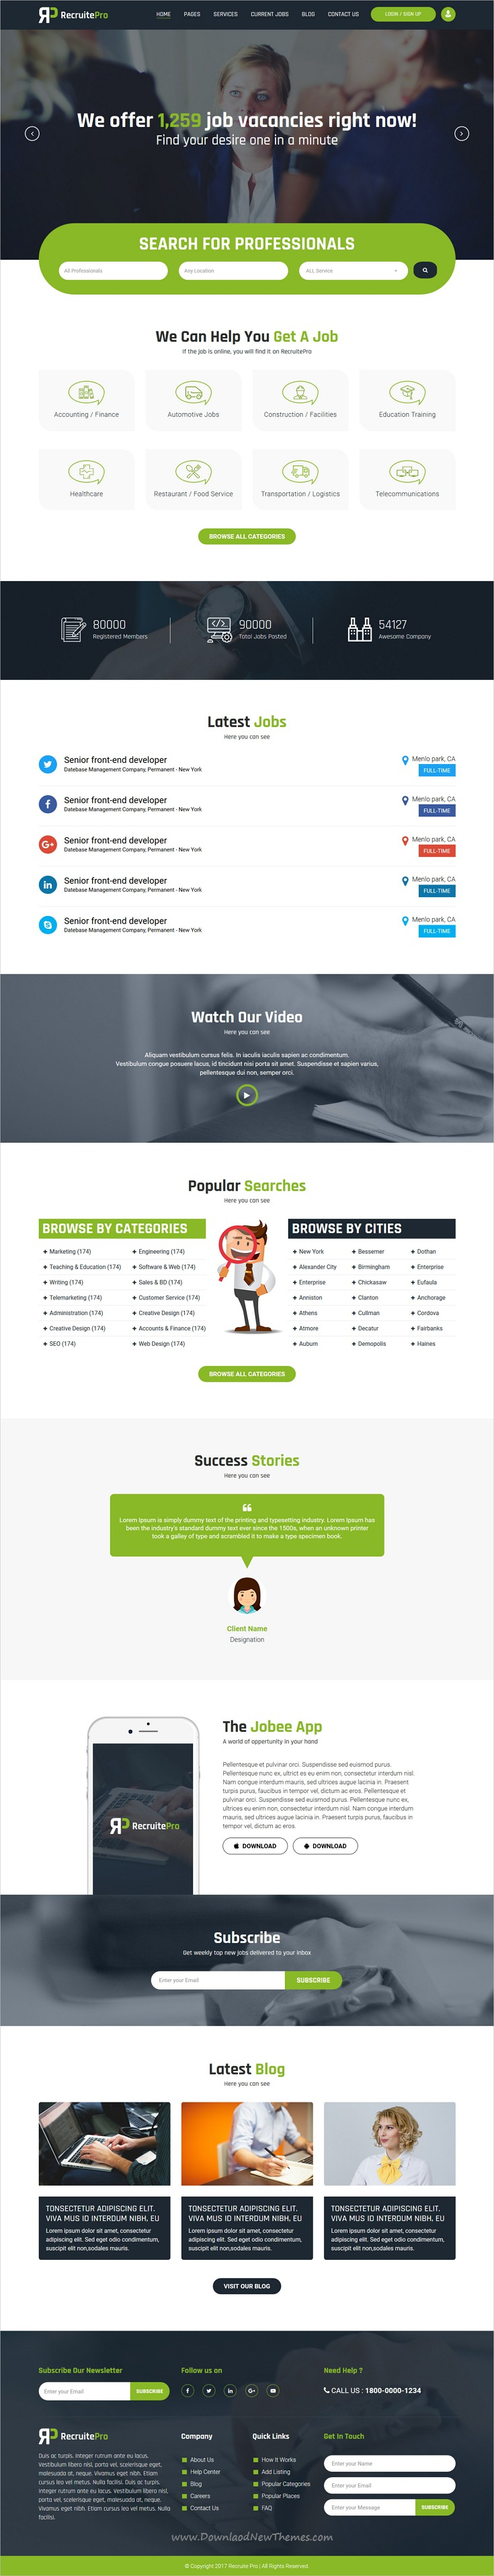 Recruit Pro Staffing And Recruiting Html Template  Template And